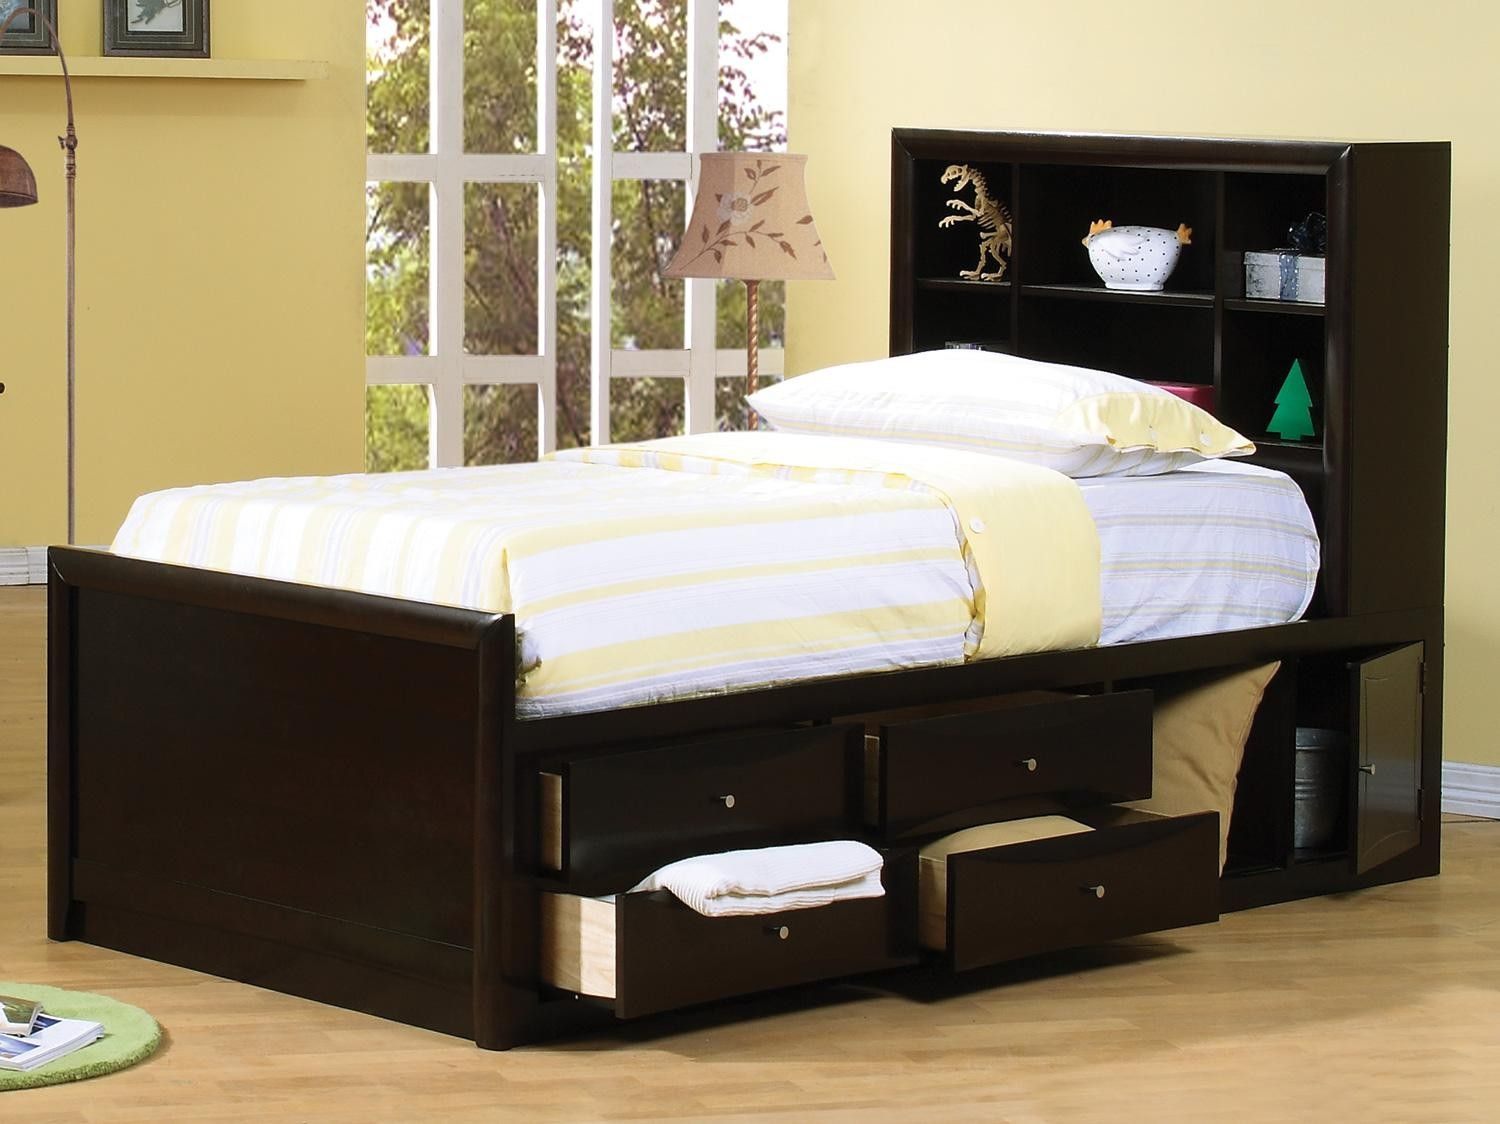 Coaster Phoenix Youth Storage Bed 400180 Beds Youth Bedroom Furniture Kids Bedroom Sets Bedroom Furniture Sets